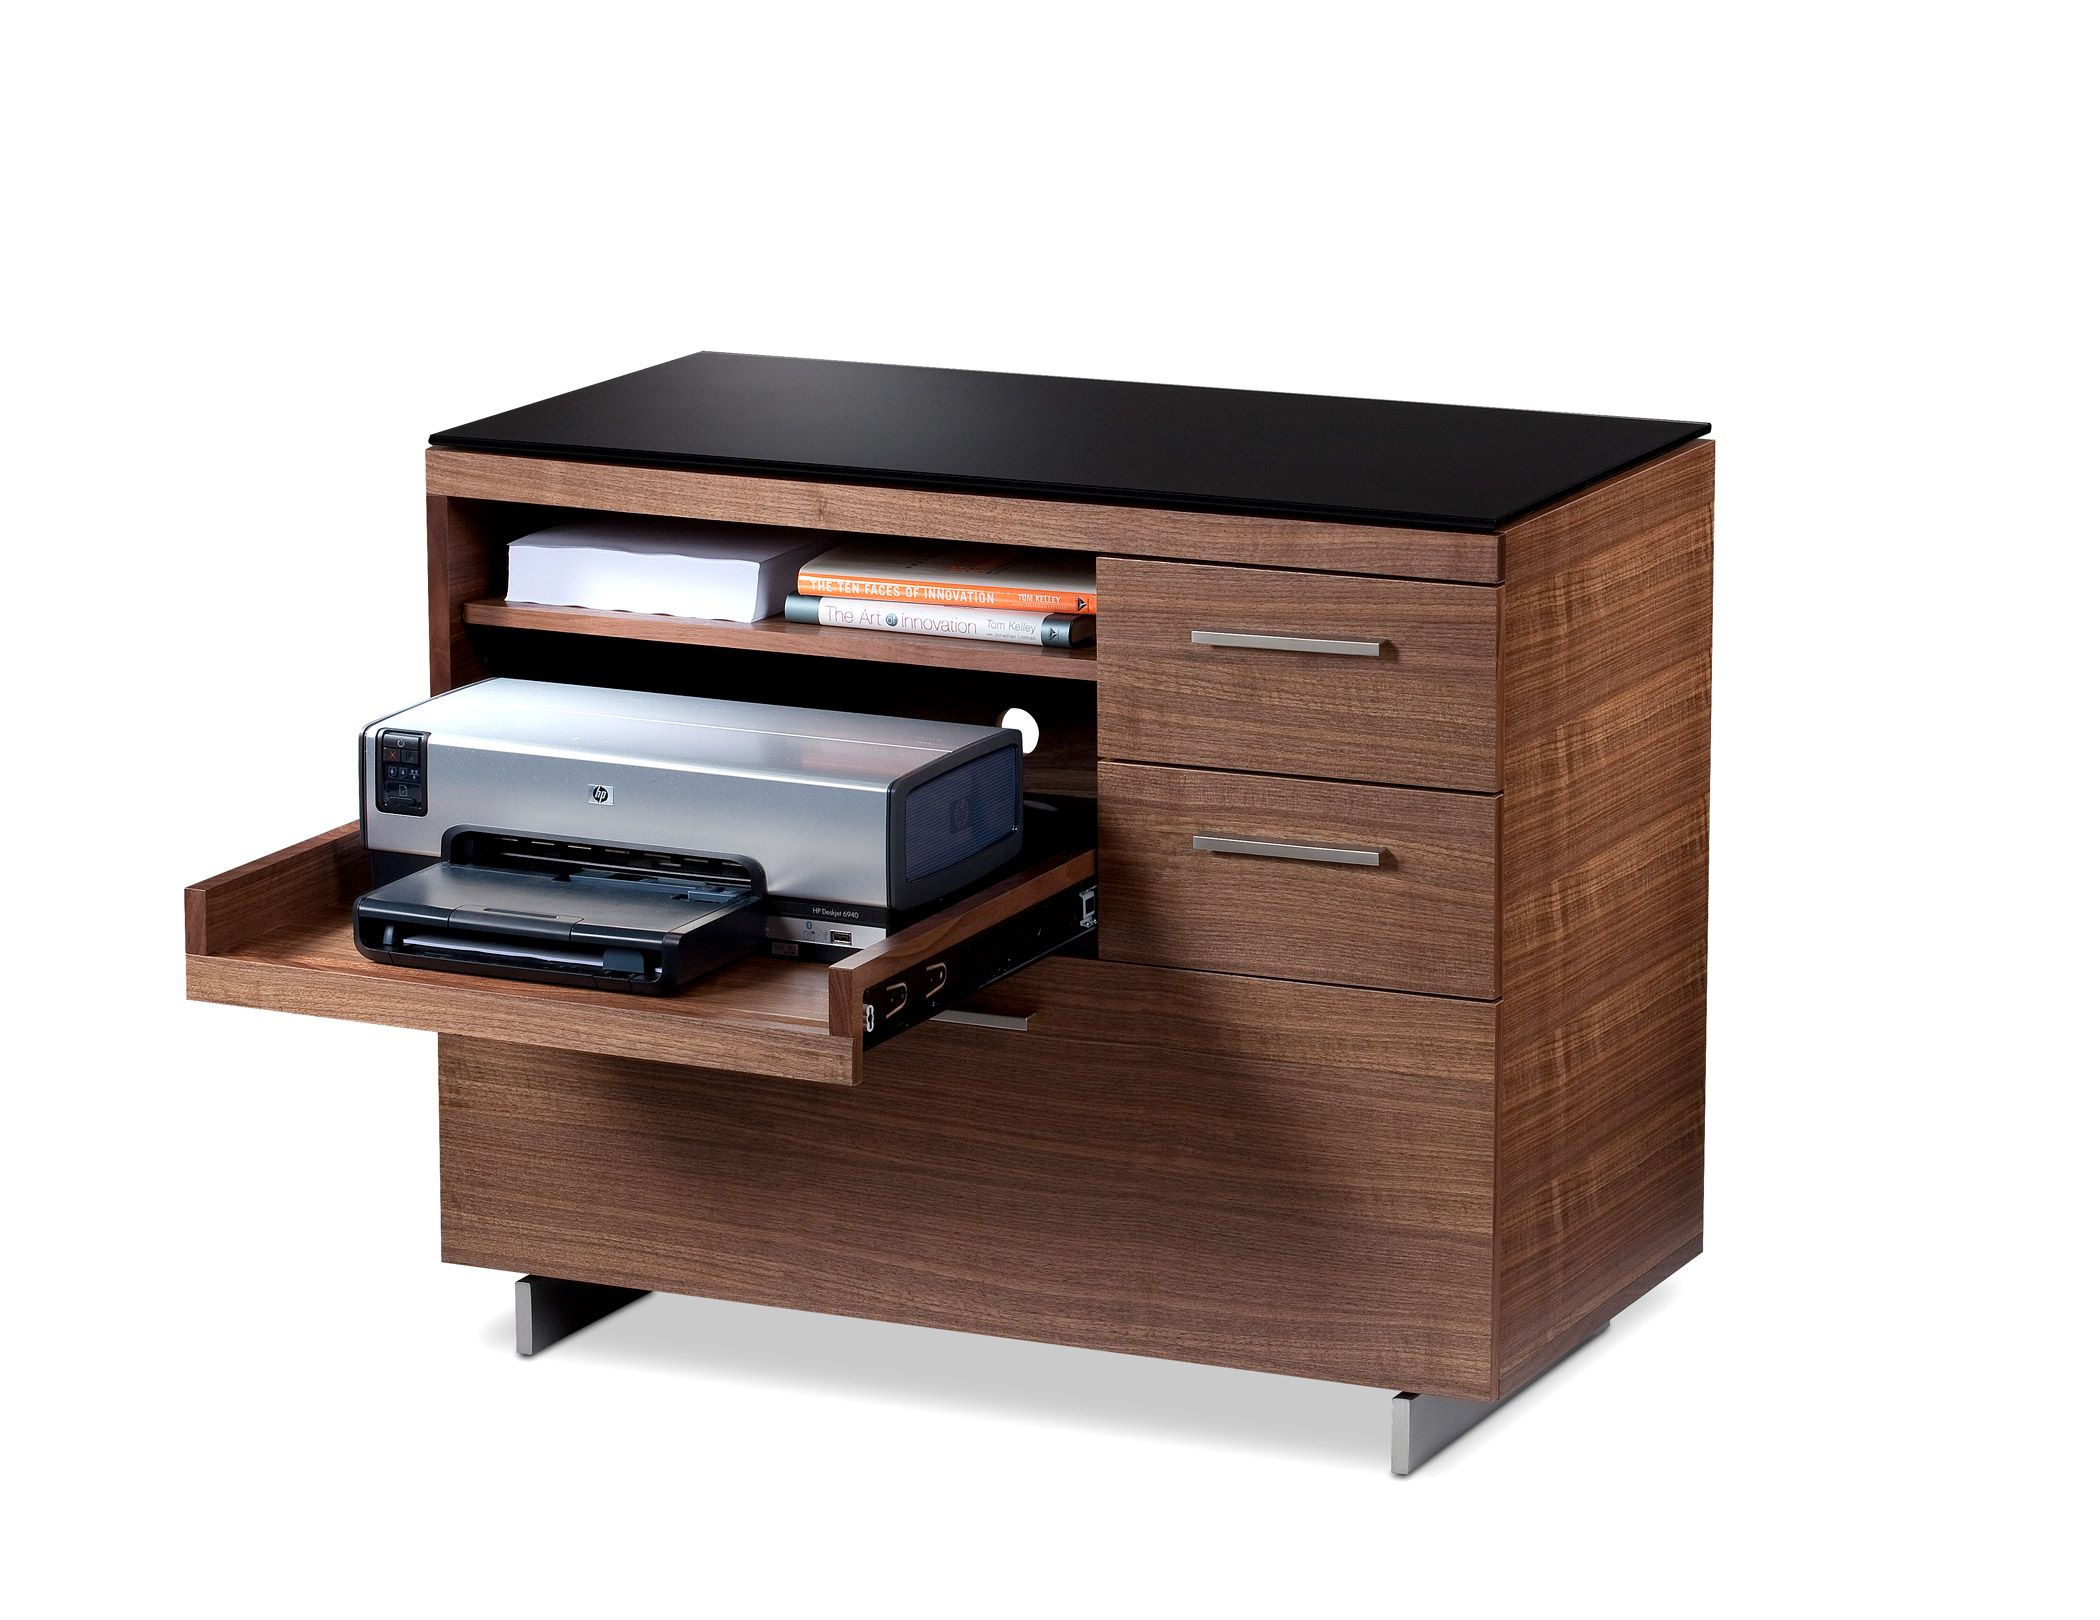 Sequel Multifunction Cabinet 6017 Hip Printer Storage Small Space Office Office Storage Cabinets